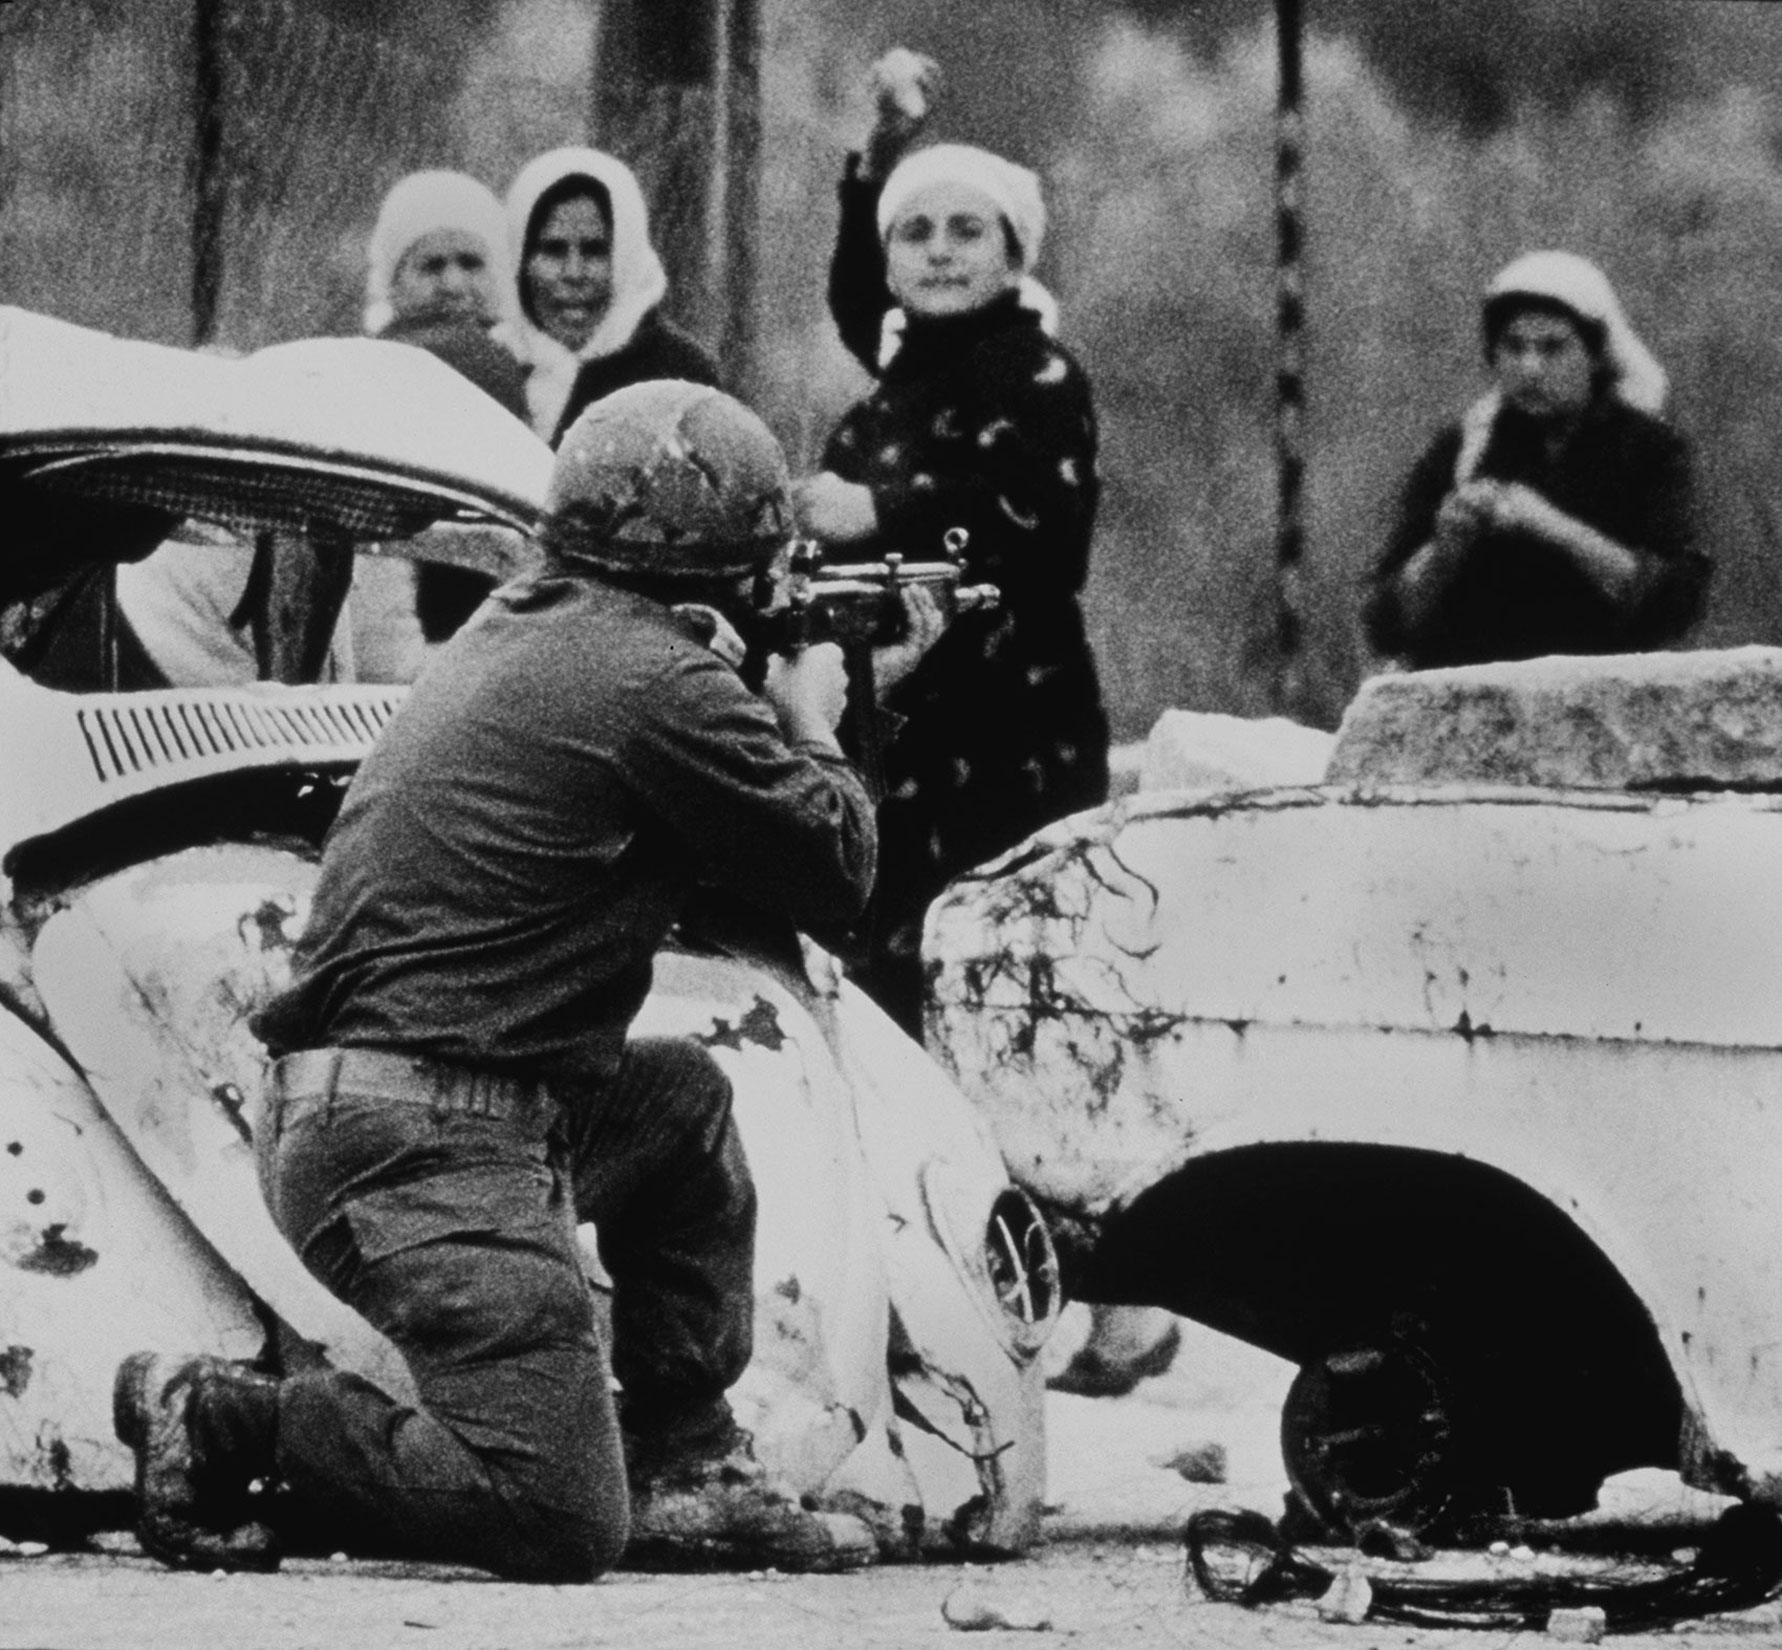 An Israeli soldier takes aim as a Palestinian woman hurls a rock at him from close range during a demonstration on February 29, 1988 in which one Palestinian youth was shot dead several months after the outbreak of the